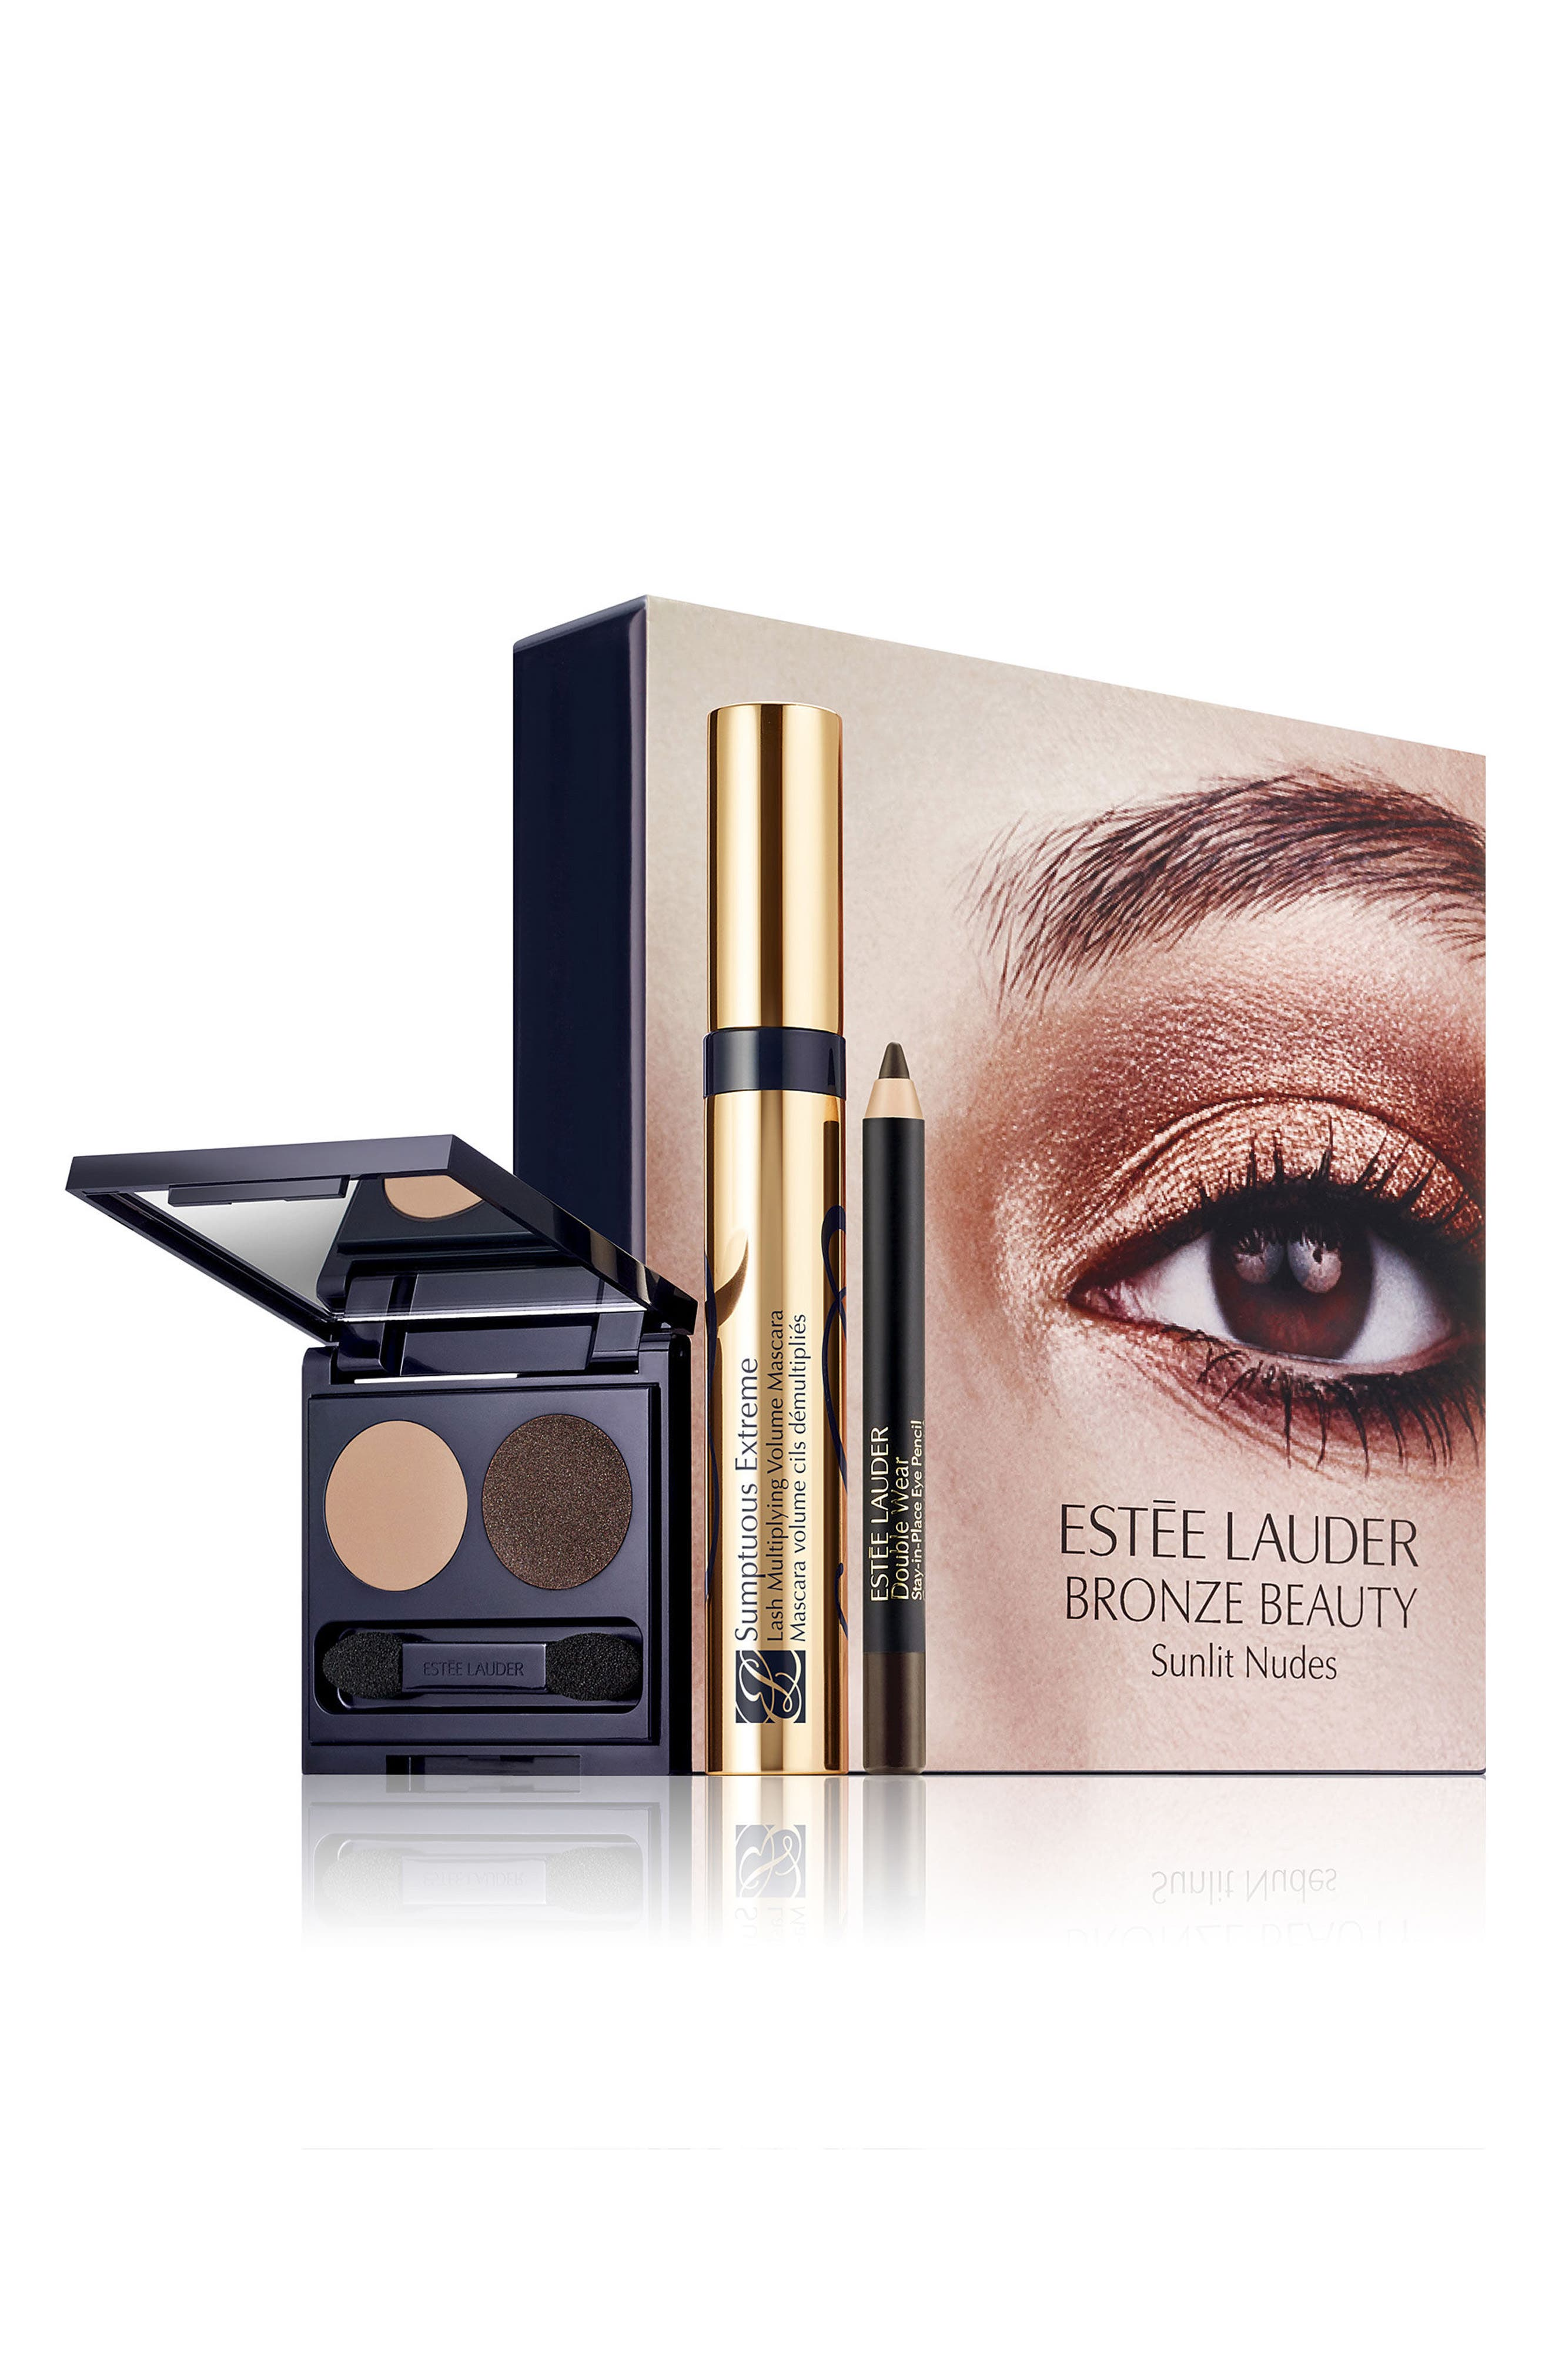 Estée Lauder Nude Eye Set ($52 Value)